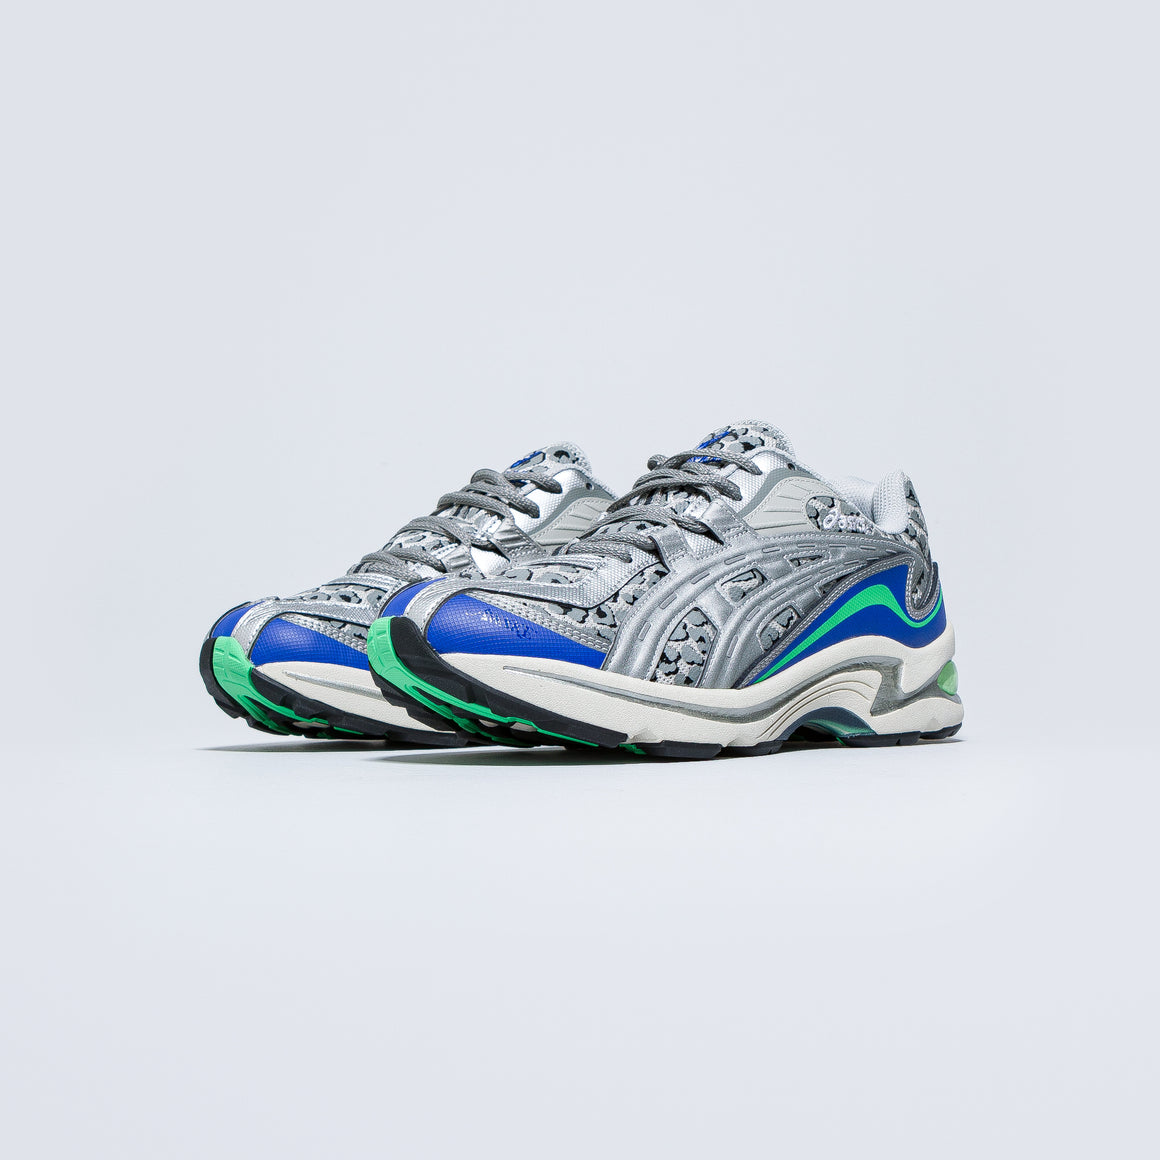 Asics - Gel-Preleus x Awake - Cool Grey/Silver - Up There